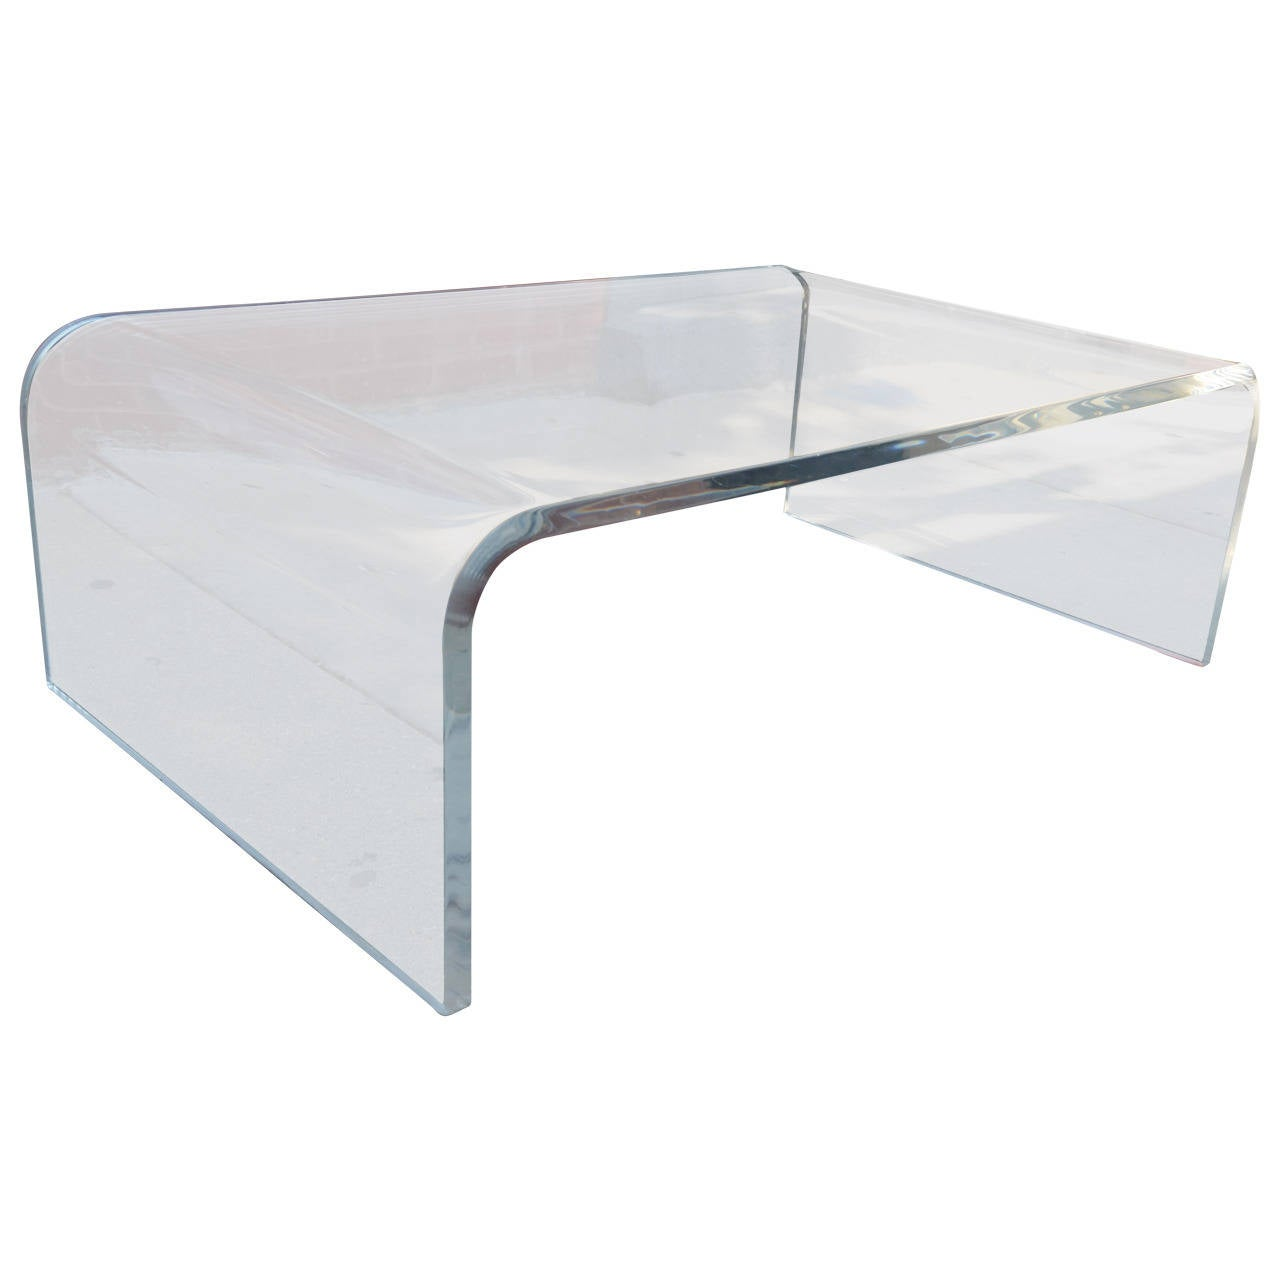 Lucite waterfall coffee table at 1stdibs for Clear coffee table